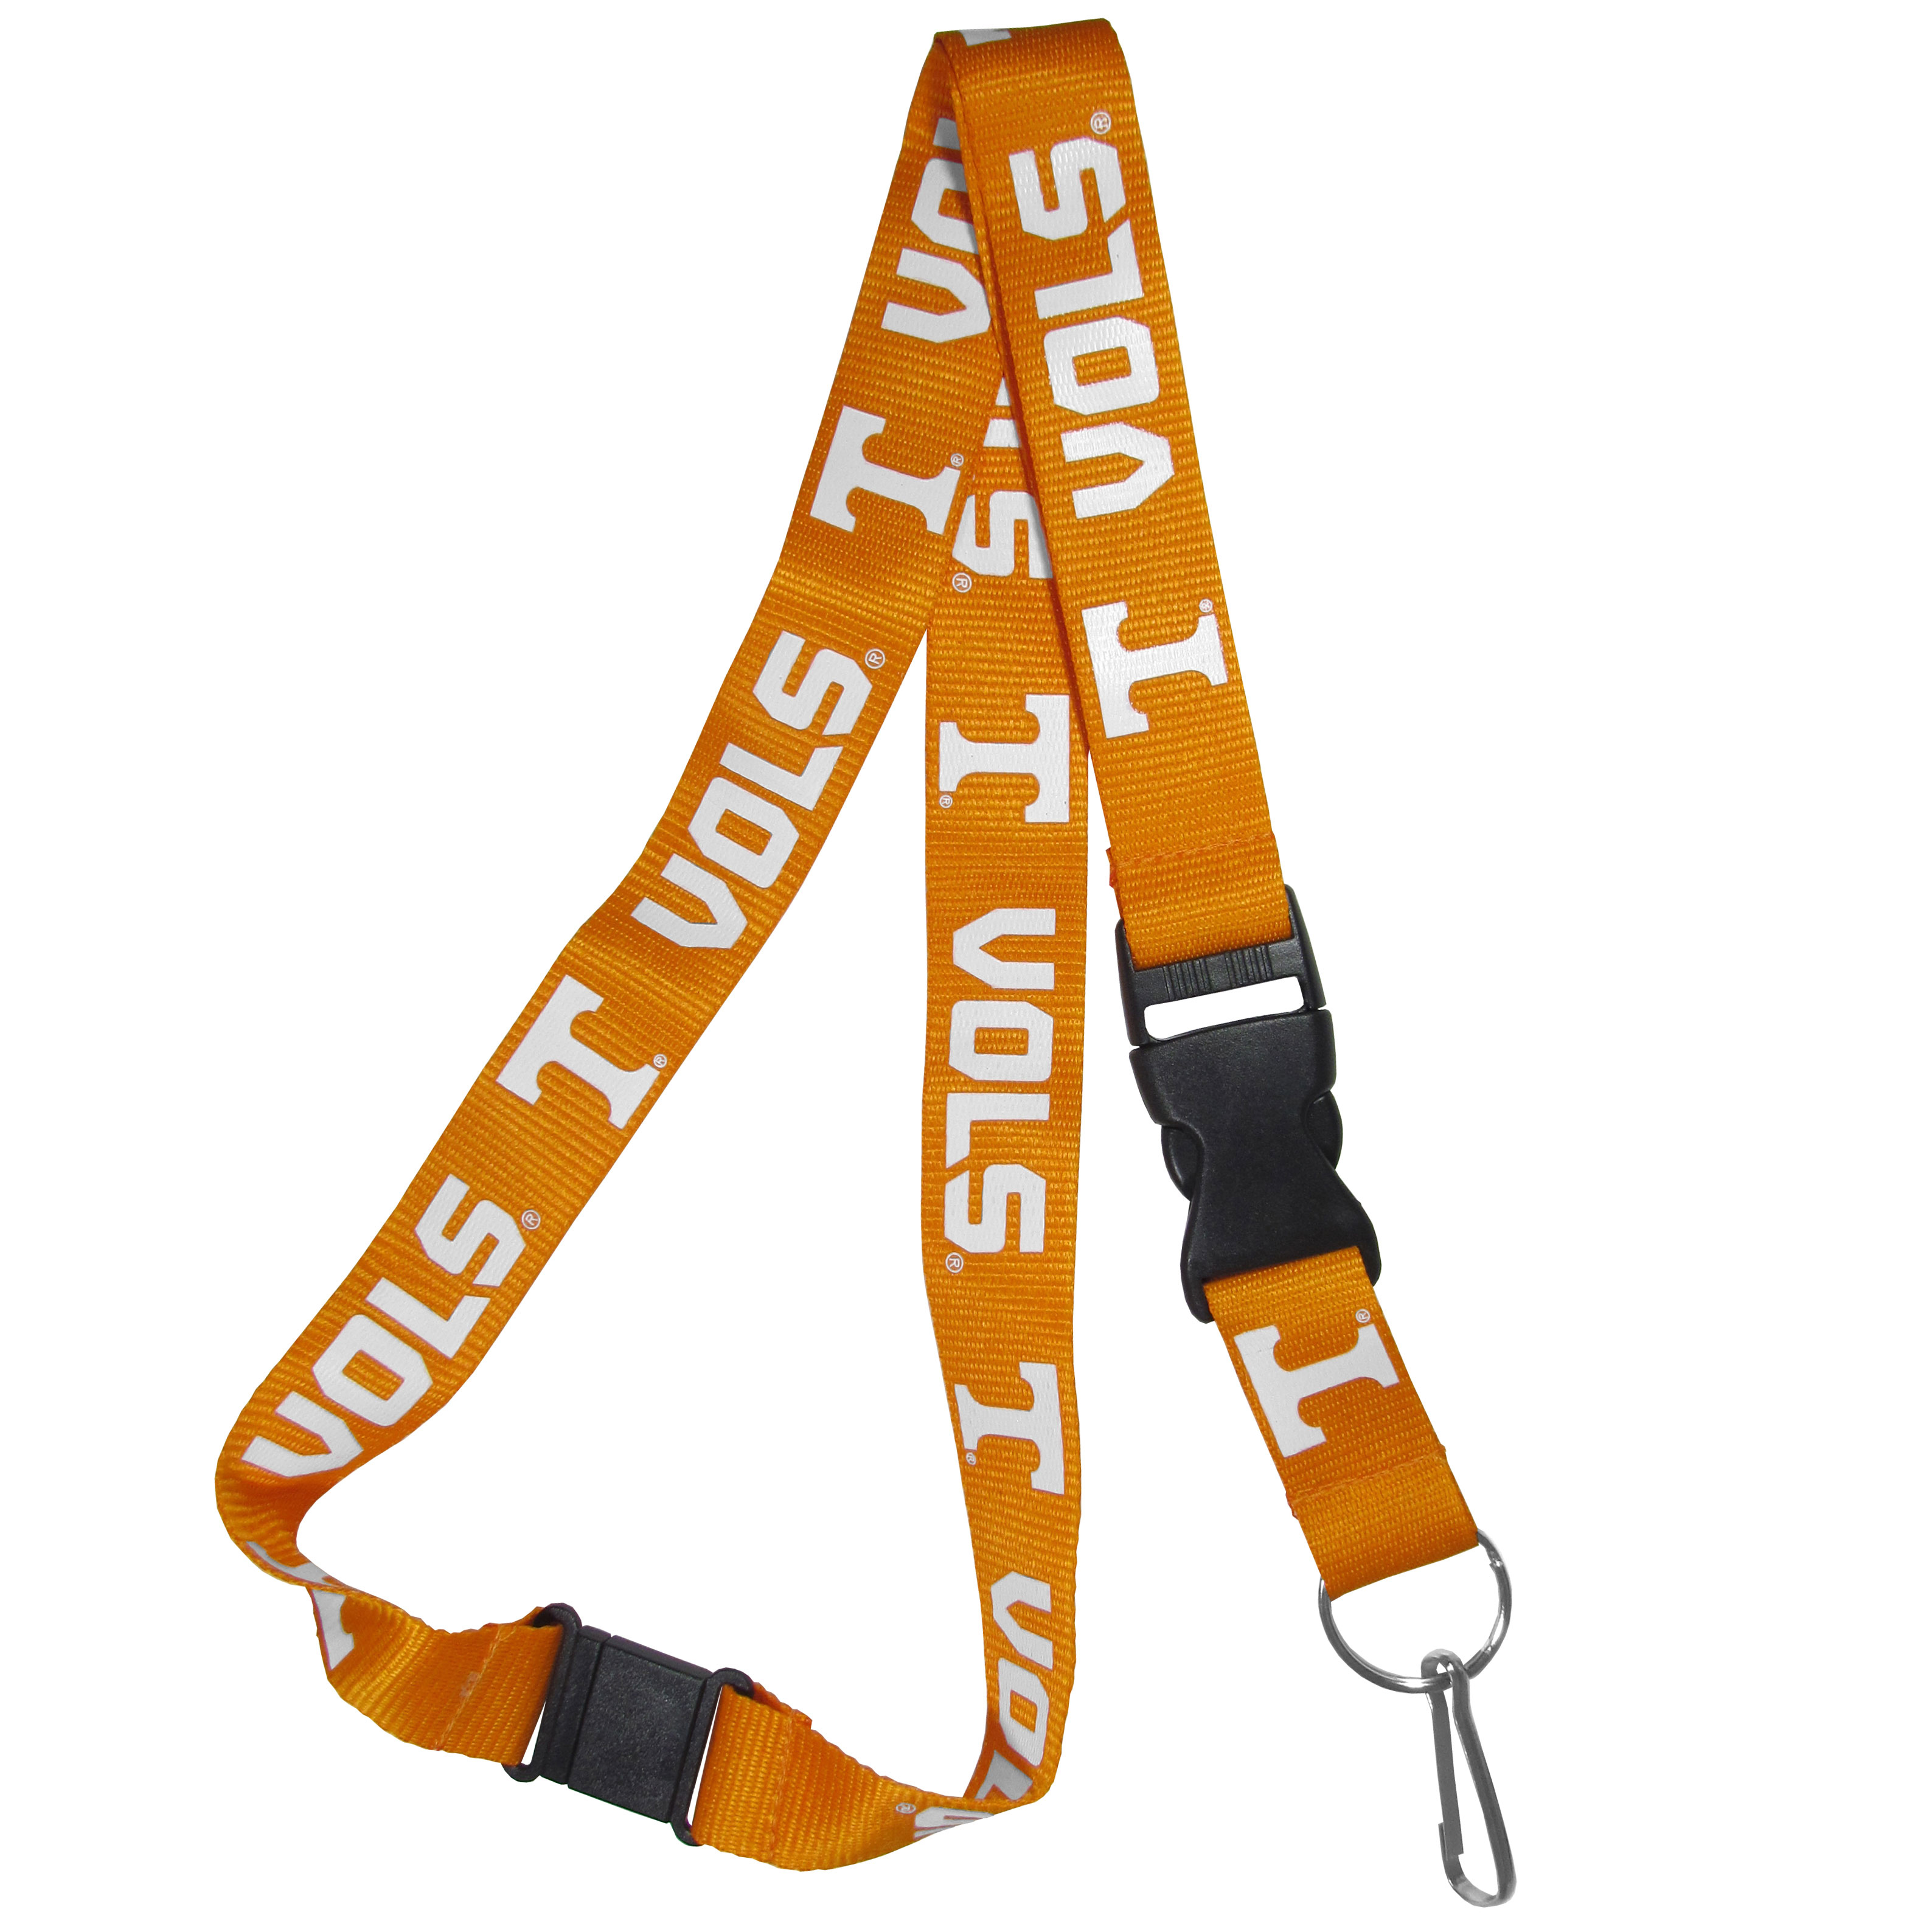 Tennessee Volunteers Lanyard - Our Tennessee Volunteers lanyards are a great way to show off your school pride and keep track of your keys, ID's, badges and much more. The lanyards are made of a comfortable nylon with screen printed school logos. They feature safety closures that disconnect if the lanyard becomes caught on something.